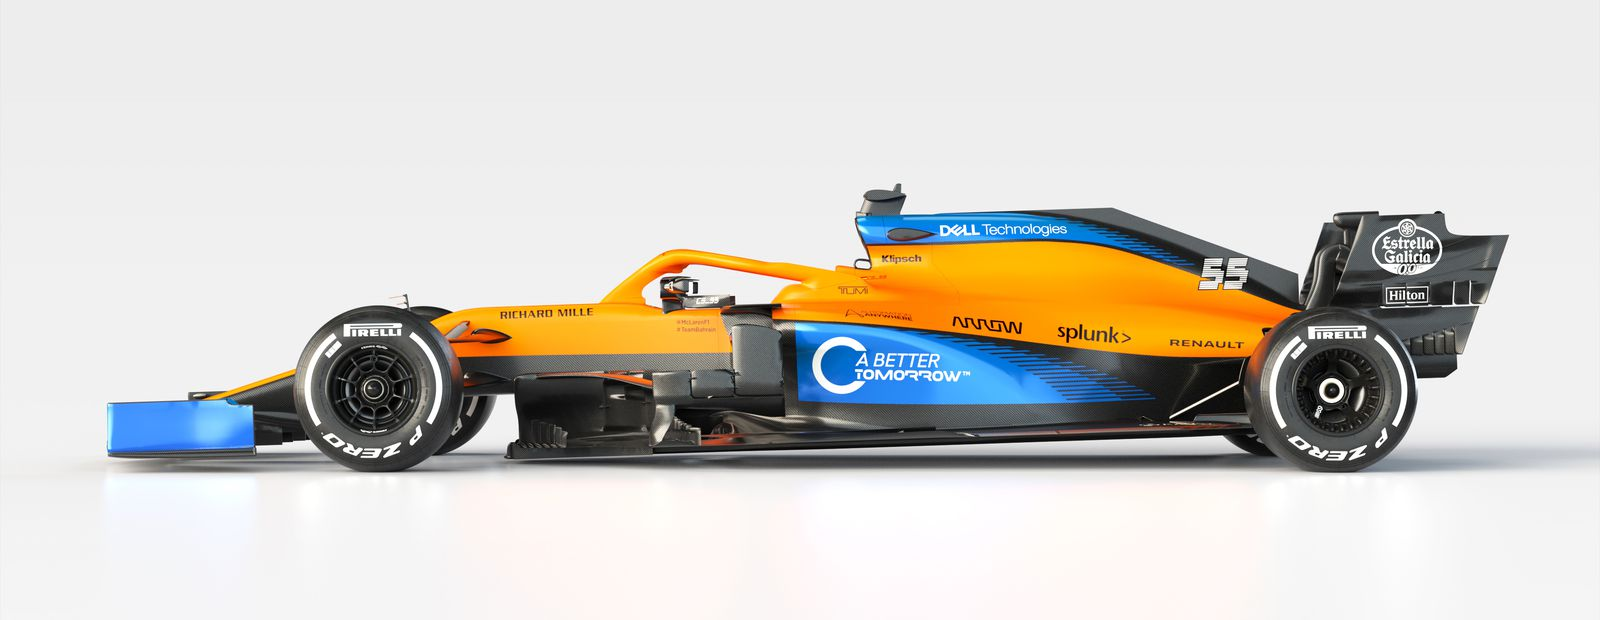 McLaren reveals the MCL35 to the world